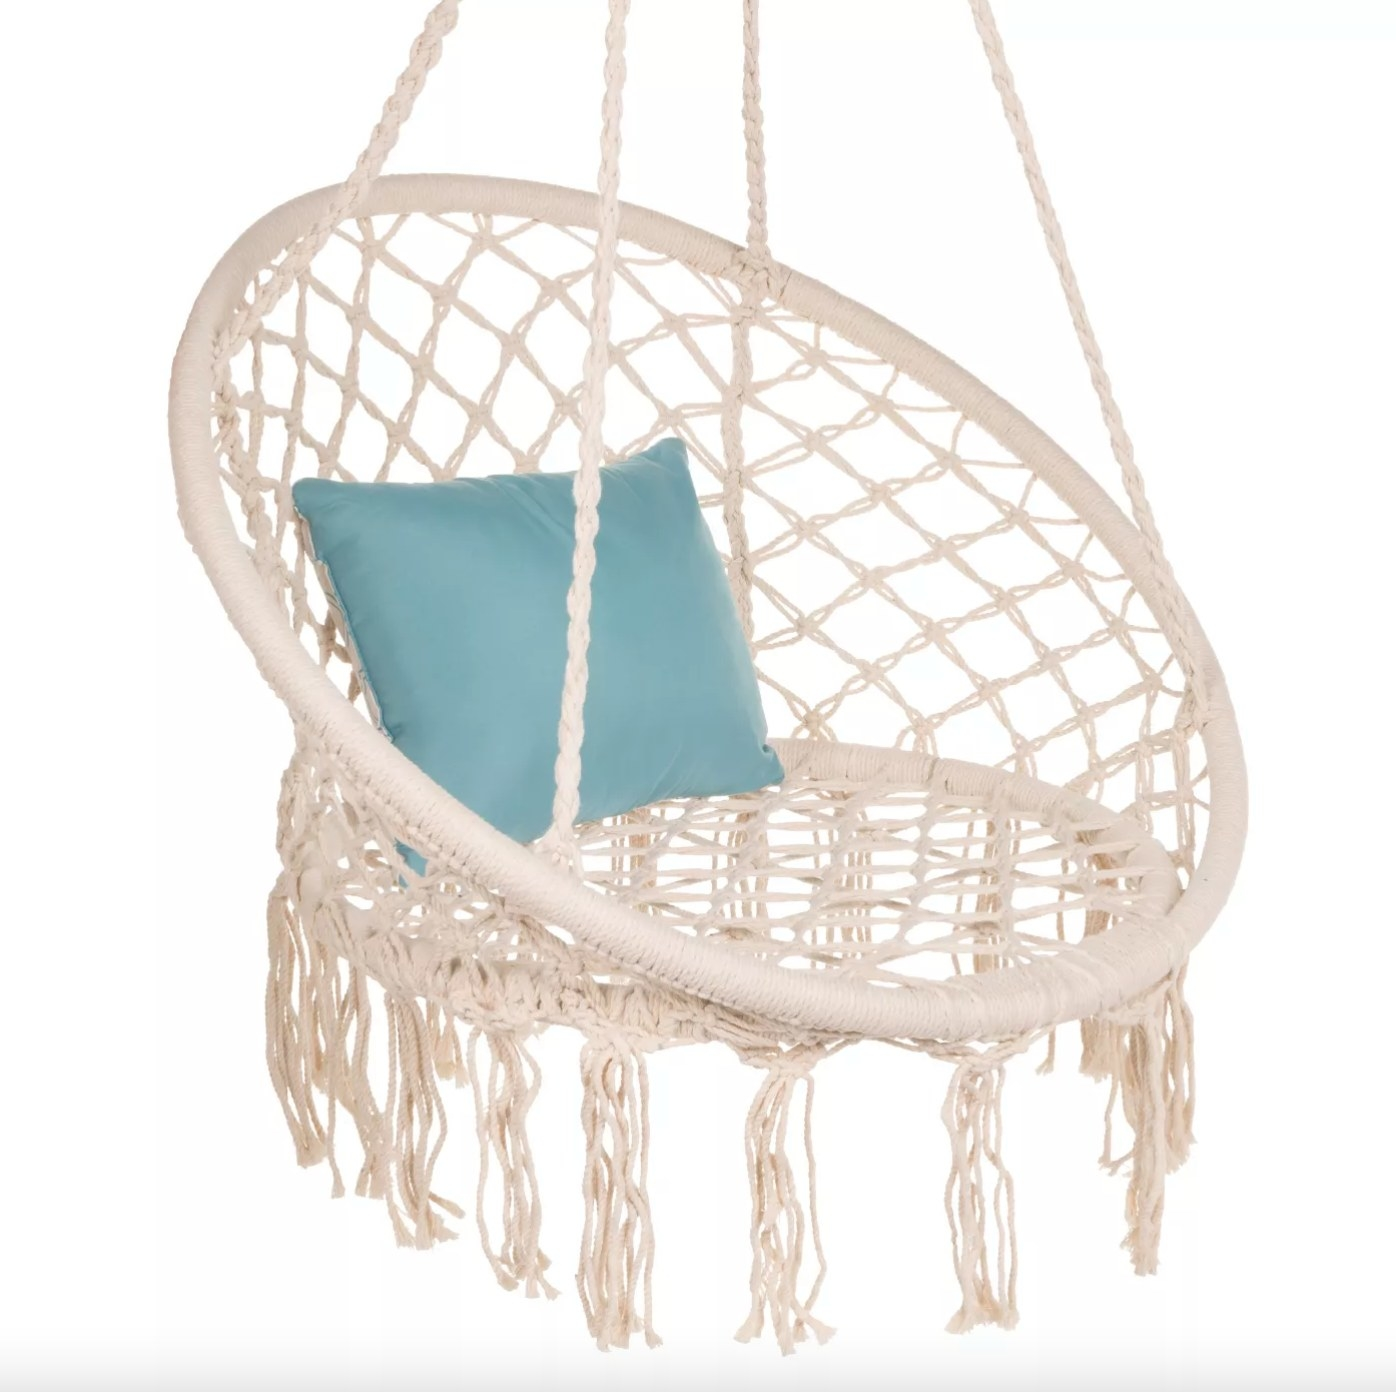 The macrame swing chair in beige with a blue pillow